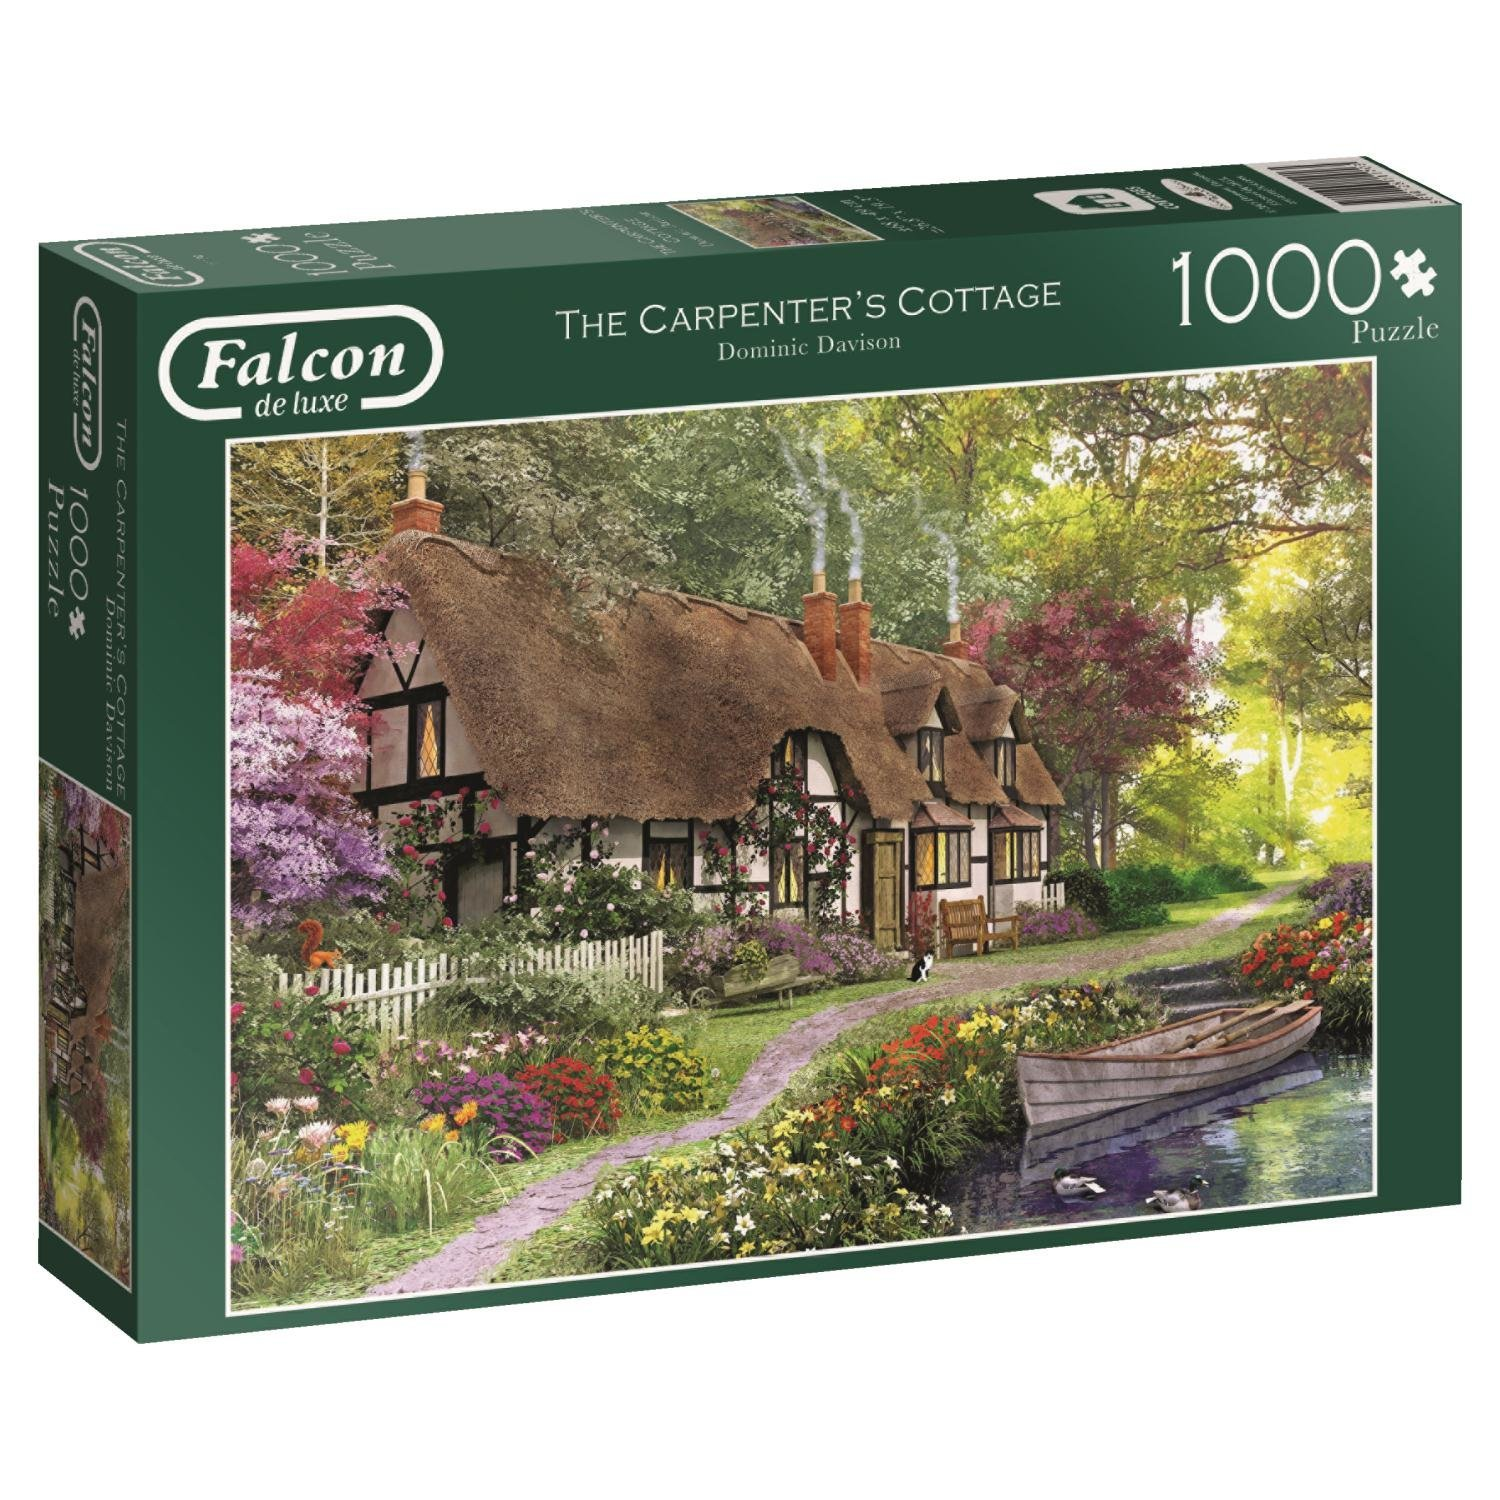 Falcon, Carpenters Cottage, 1000pc Jigsaw